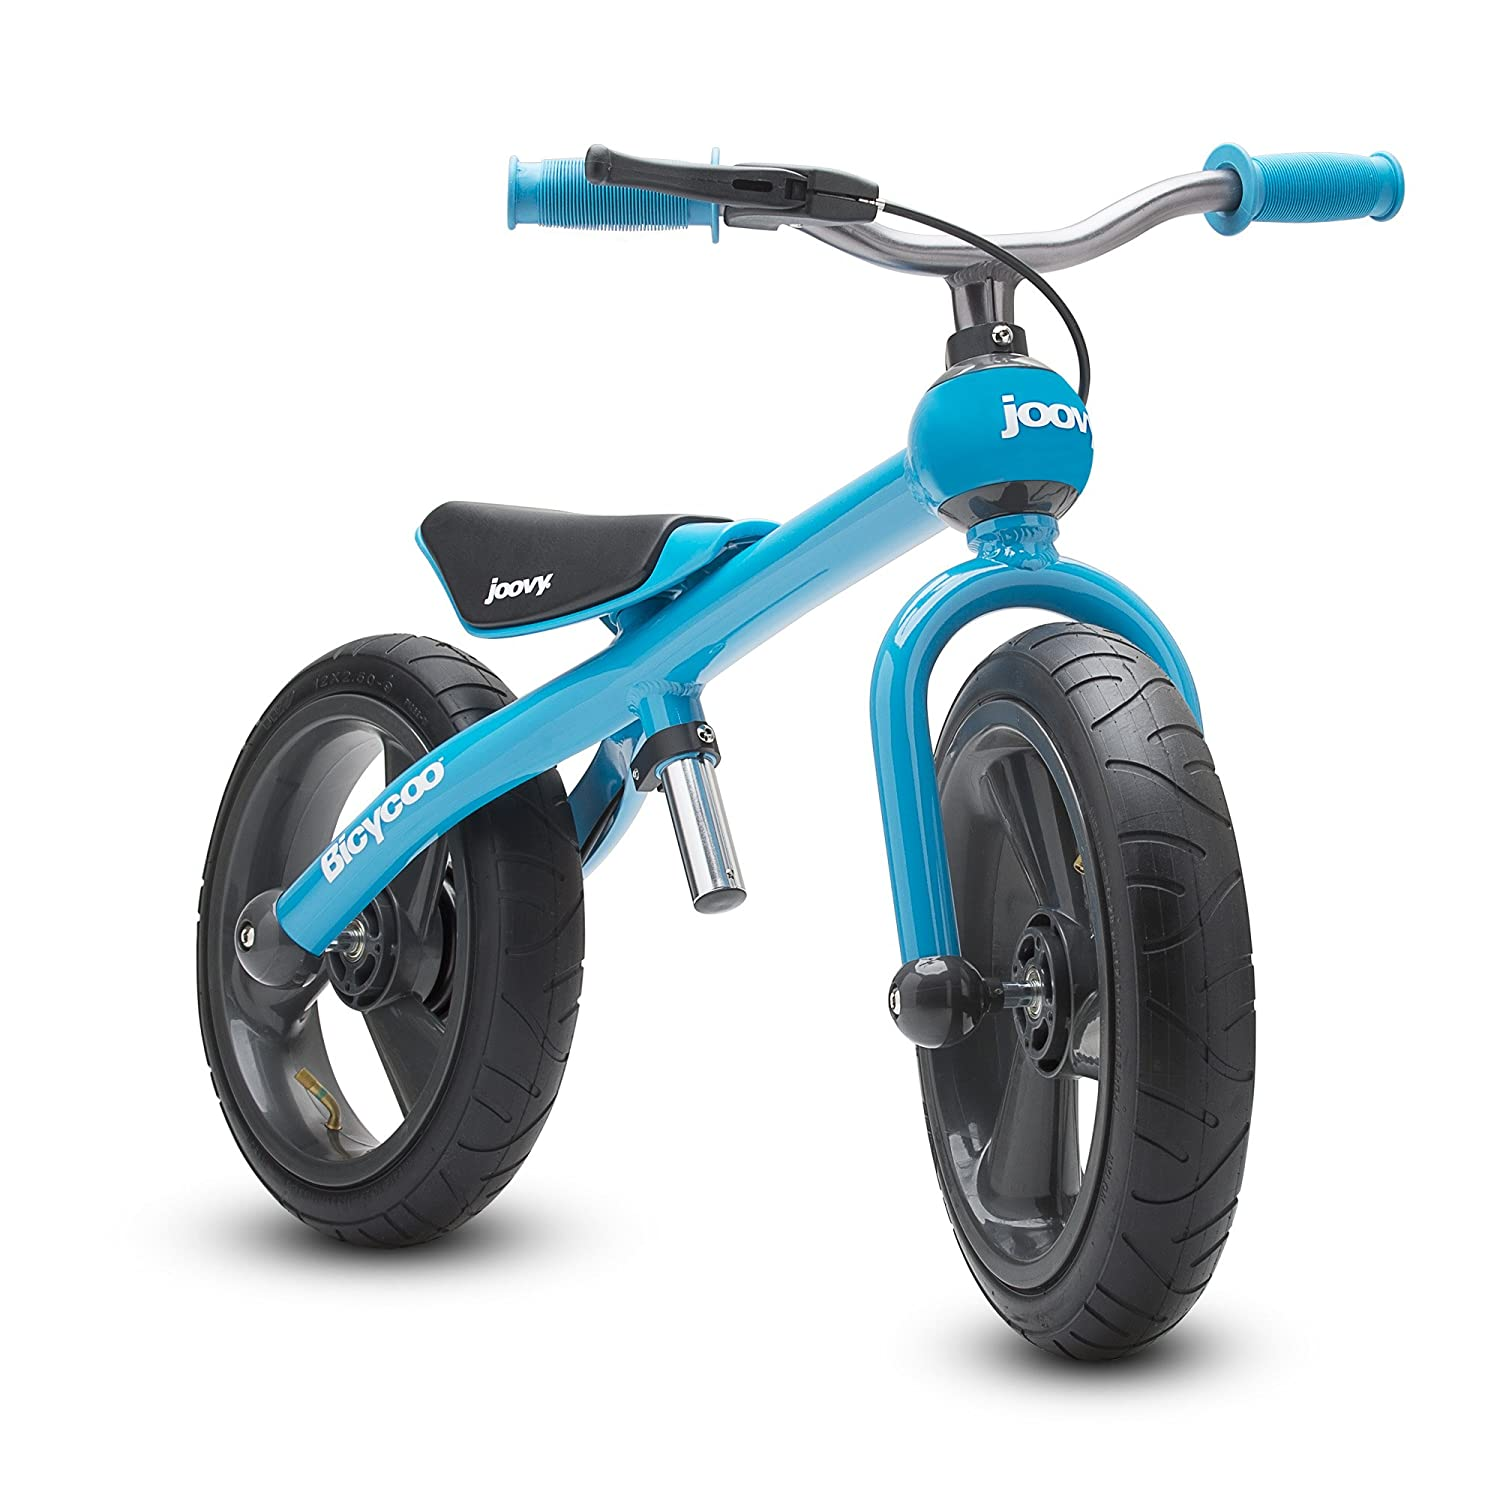 Joovy Bicycoo Balance Bike, Black 157